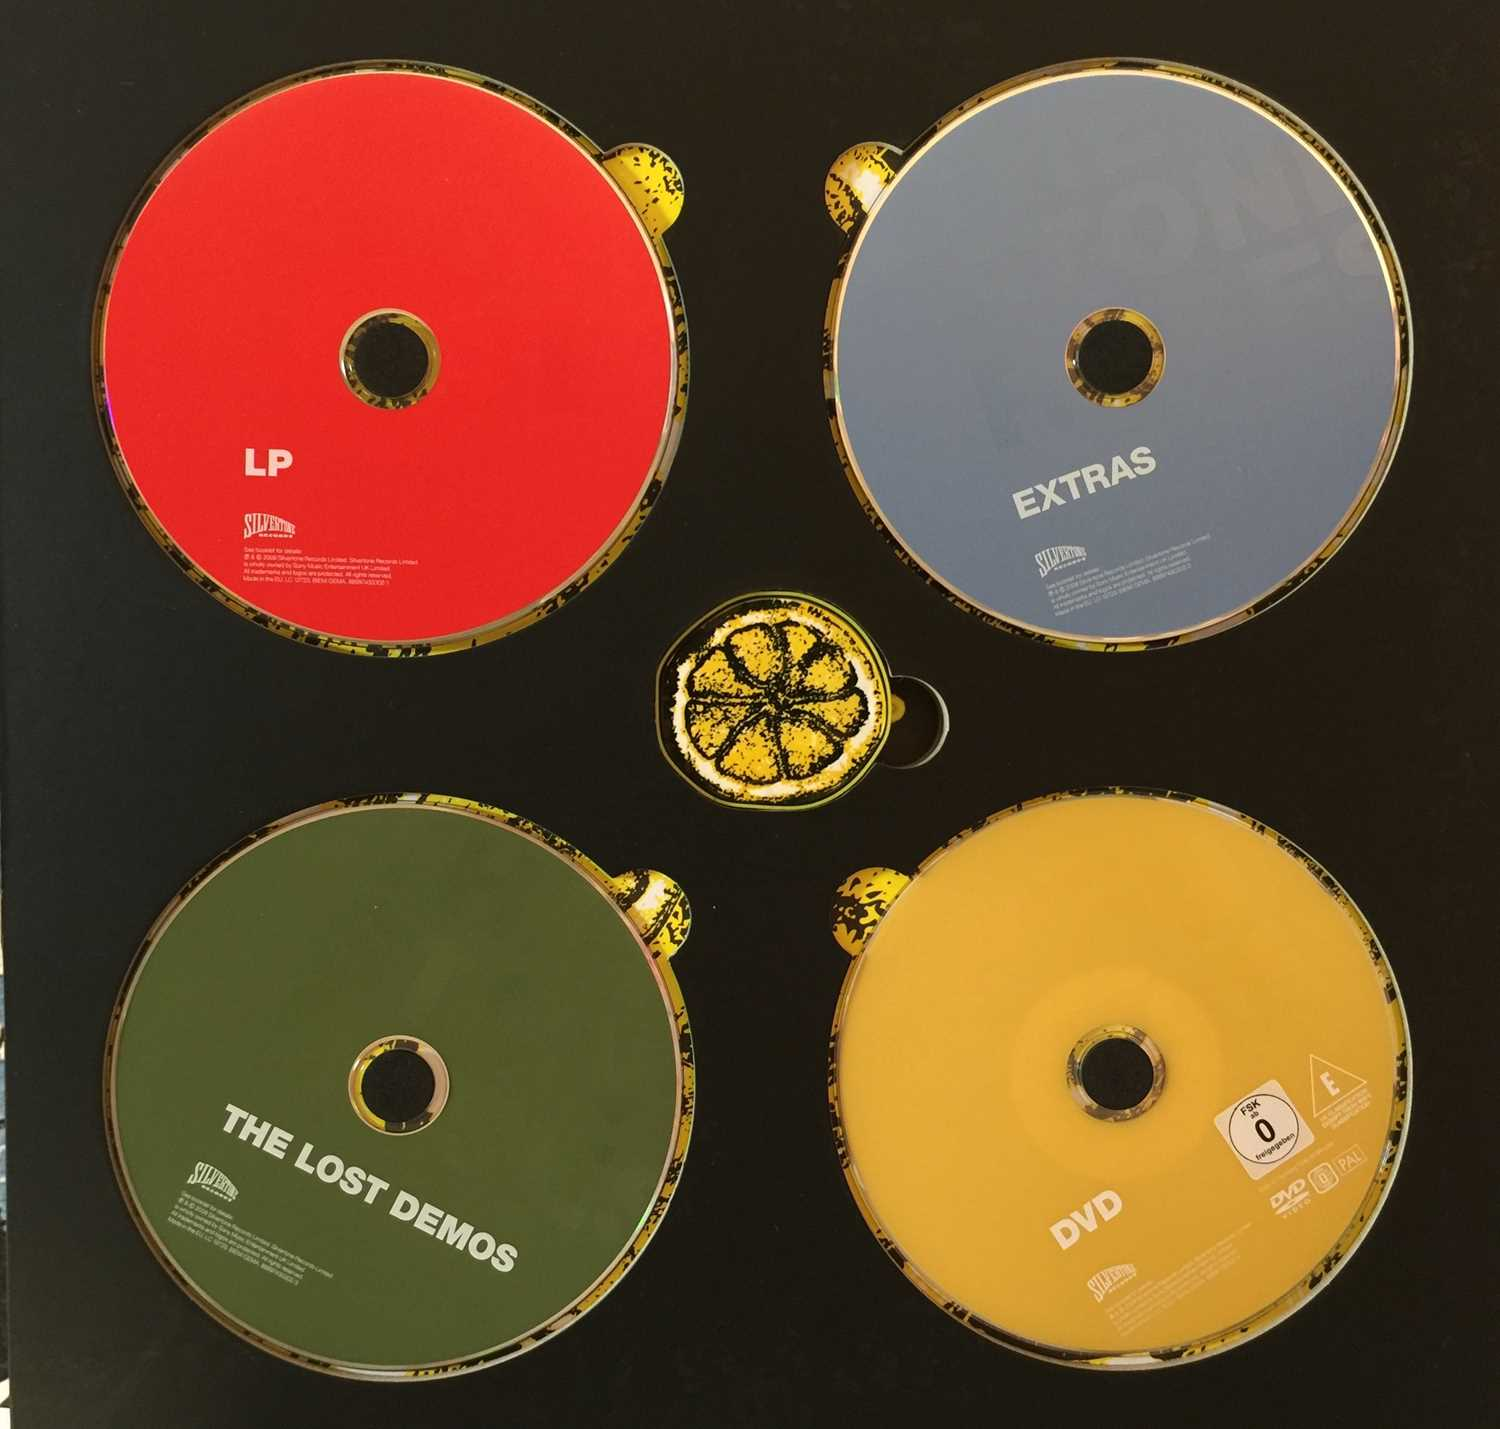 THE STONE ROSES - THE STONE ROSES (2009 LIMITED EDITION LP/CD/DVD BOX SET - SILVERTONE 88697430302) - Image 4 of 4